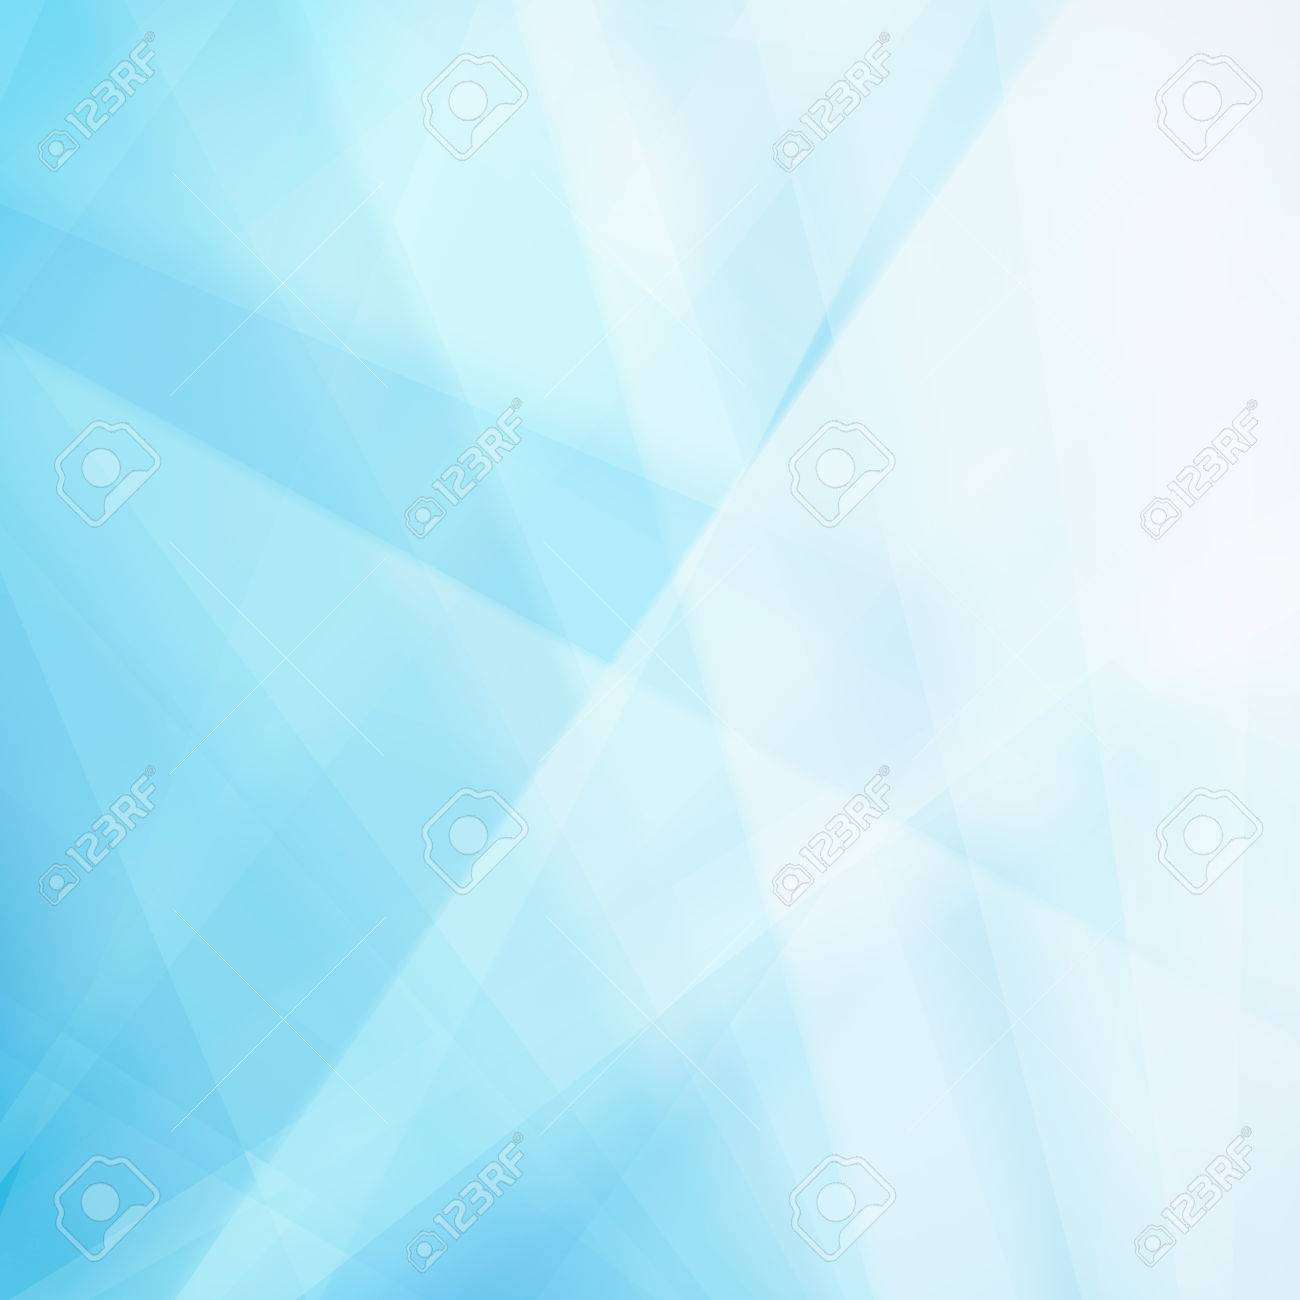 abstract blue background with white lines and stripes in random pattern, triangle shapes and diagonal stripes, gradient blue to white color scheme, business report or corporate job background concept - 46183523